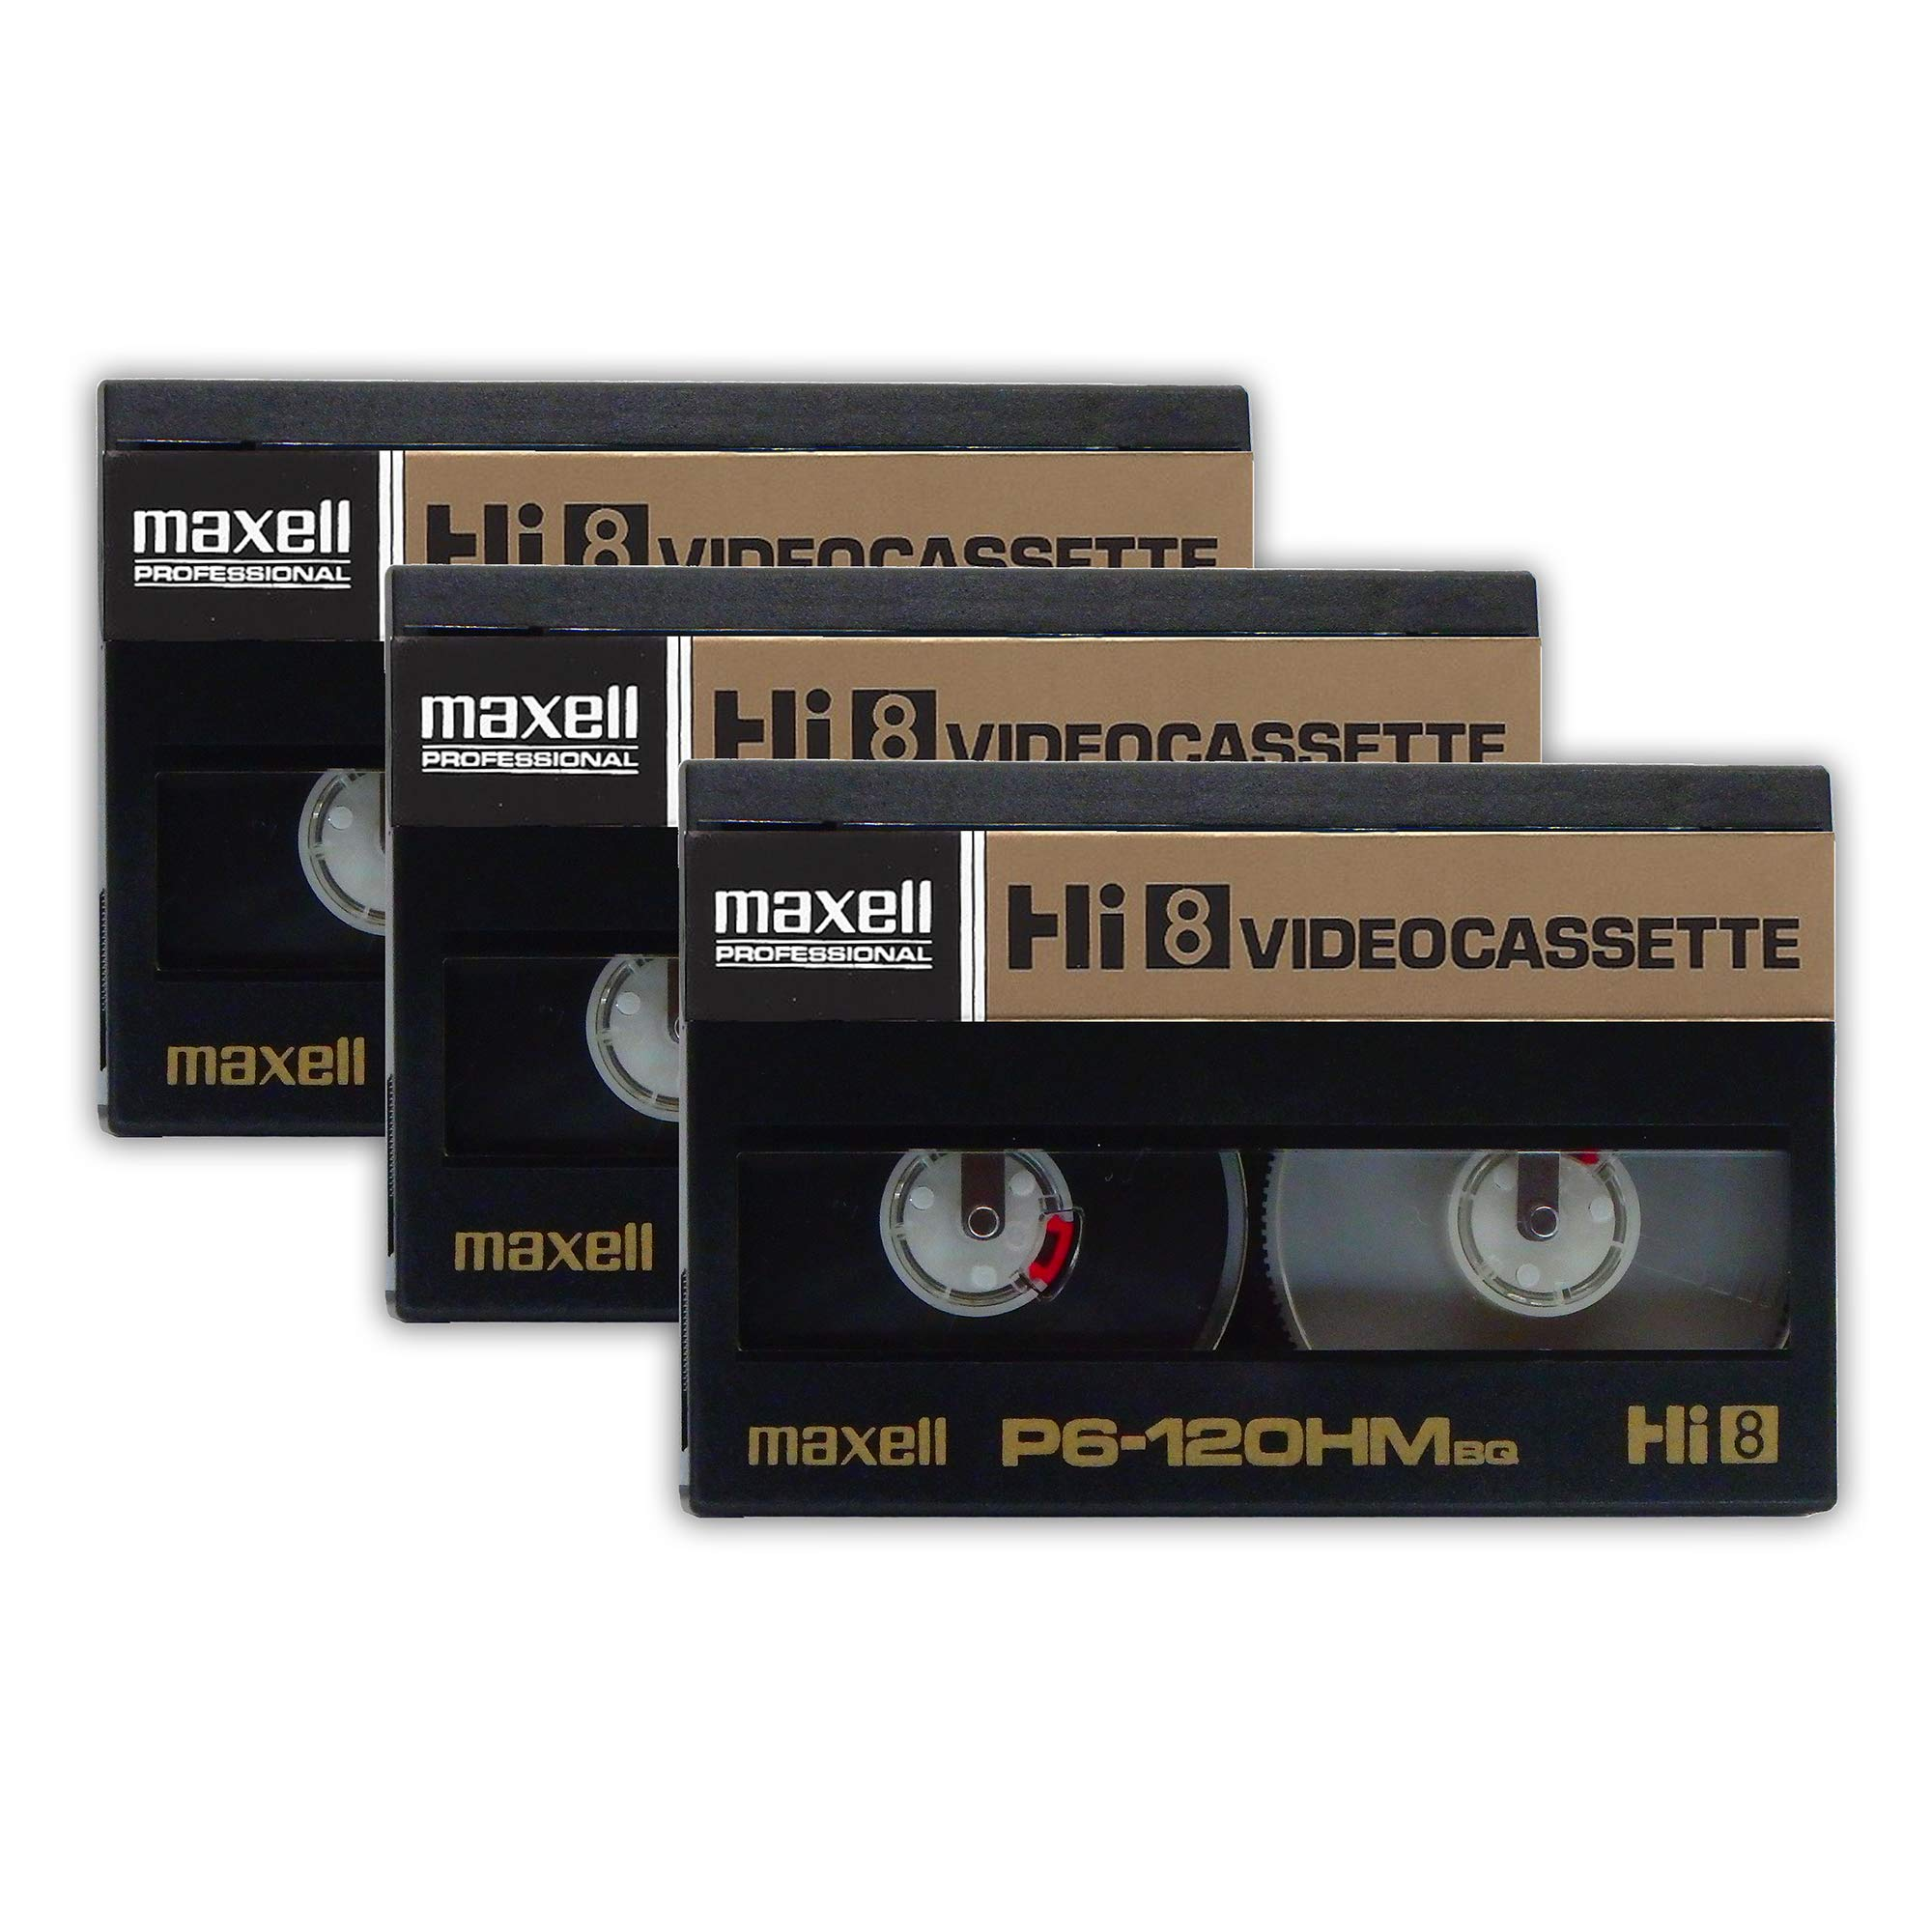 [3-Pack] Maxell P6-120HM Professional Broadcast Quality Hi8 8mm Video Cassette Tape by Generic